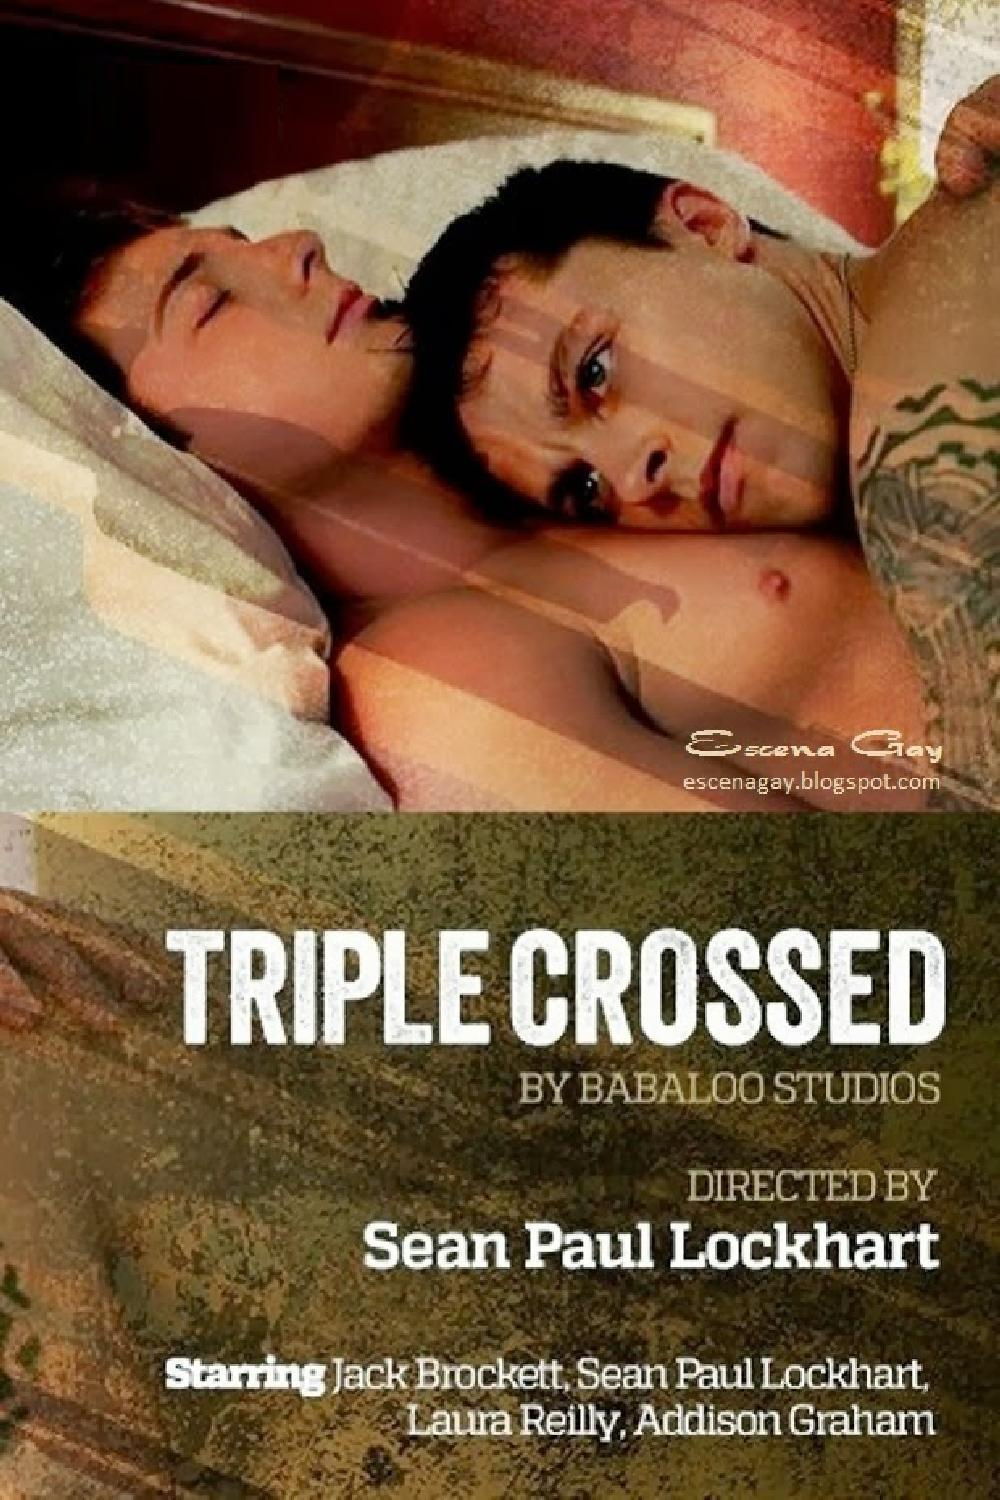 Triple Crossed DVD (with Cover Autographed by SPL) DVD0001